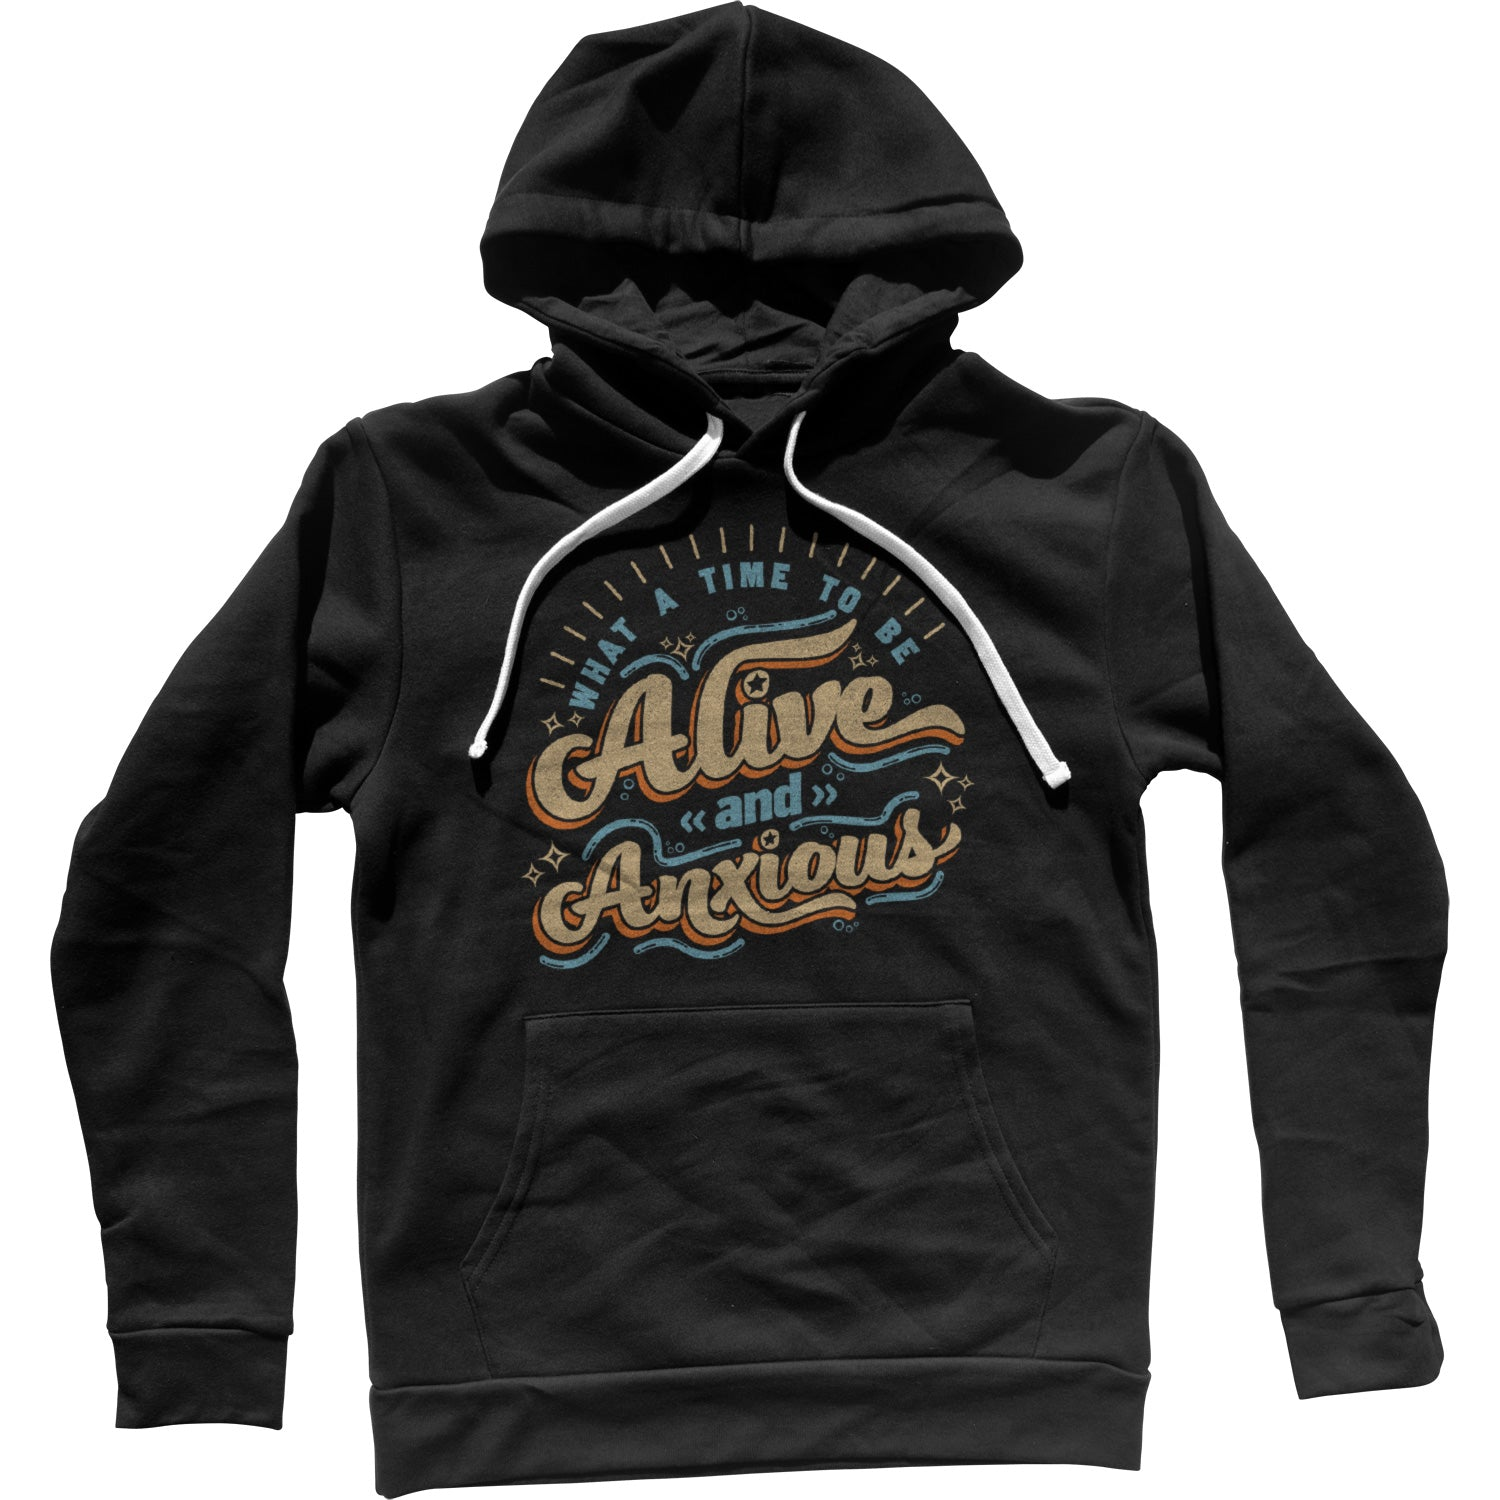 What a Time to be Alive and Anxious Unisex Hoodie